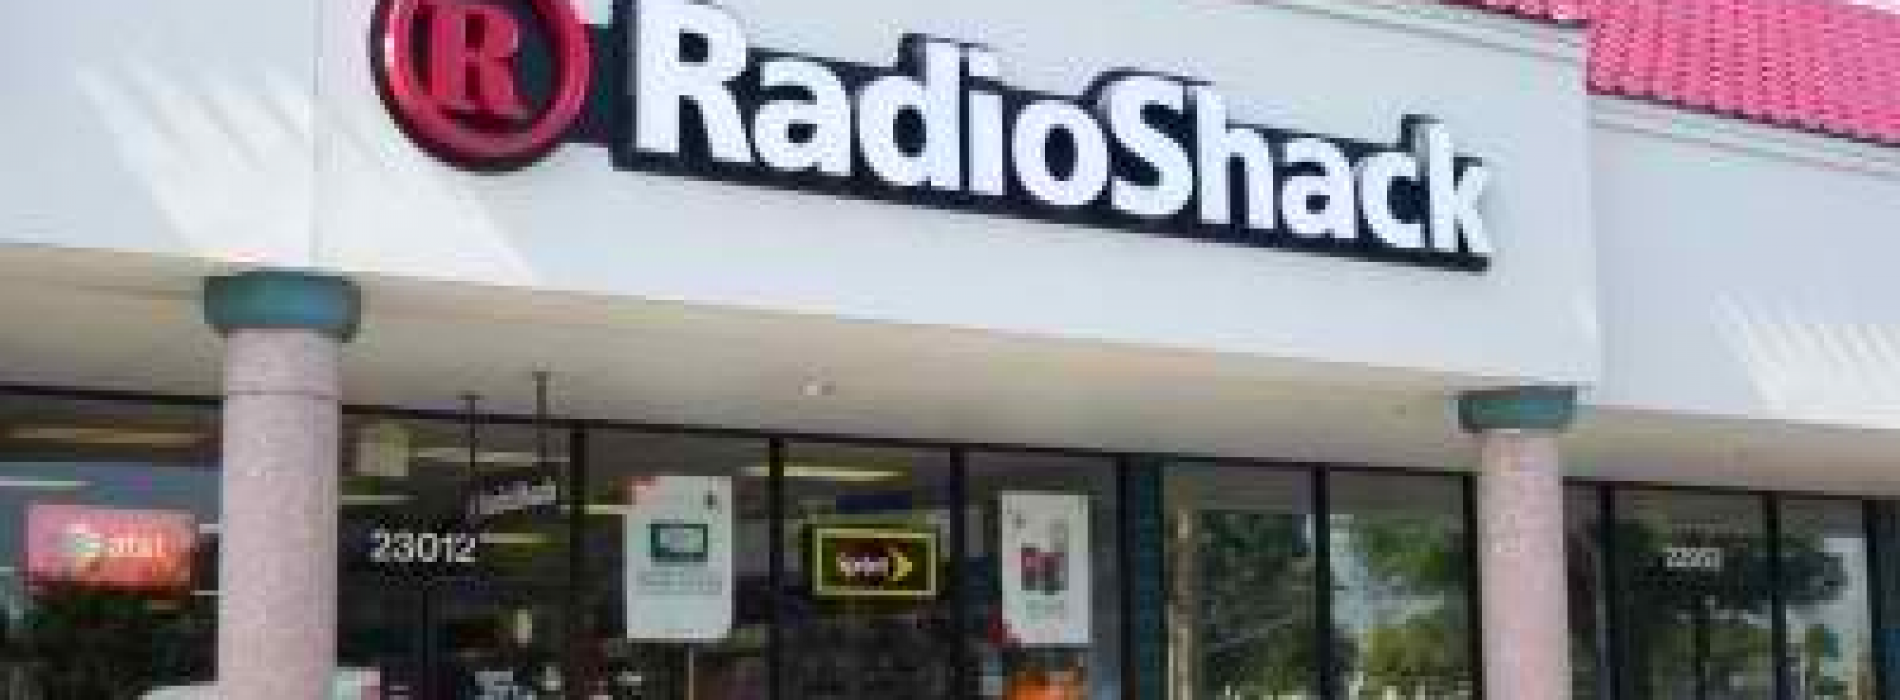 RadioShack introduces Mobile Makeover Month, sell back used electronics